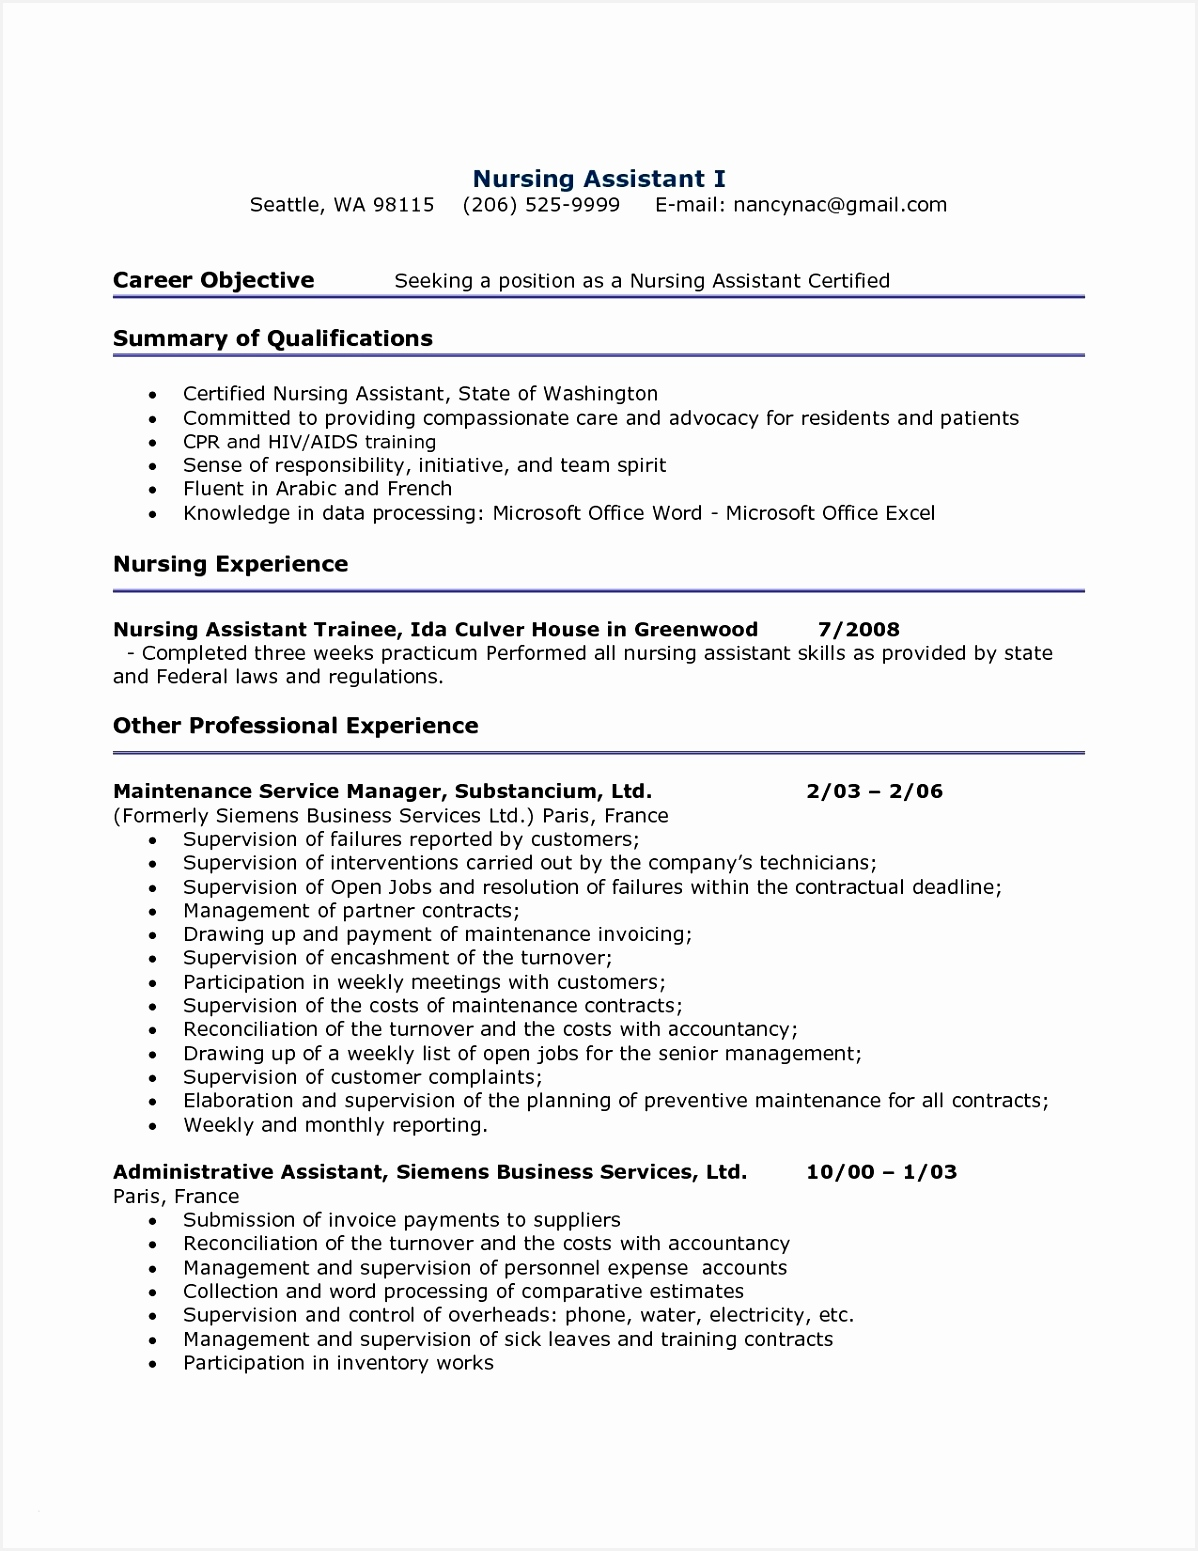 Contract Stress Engineer Sample Resume Ooj3g Luxury Resume Examples Mechanical Engineer Archives Margorochelle Of Contract Stress Engineer Sample Resume Cagkn Unique 42 Unique Resume format for Mechanical Engineering Students Pdf